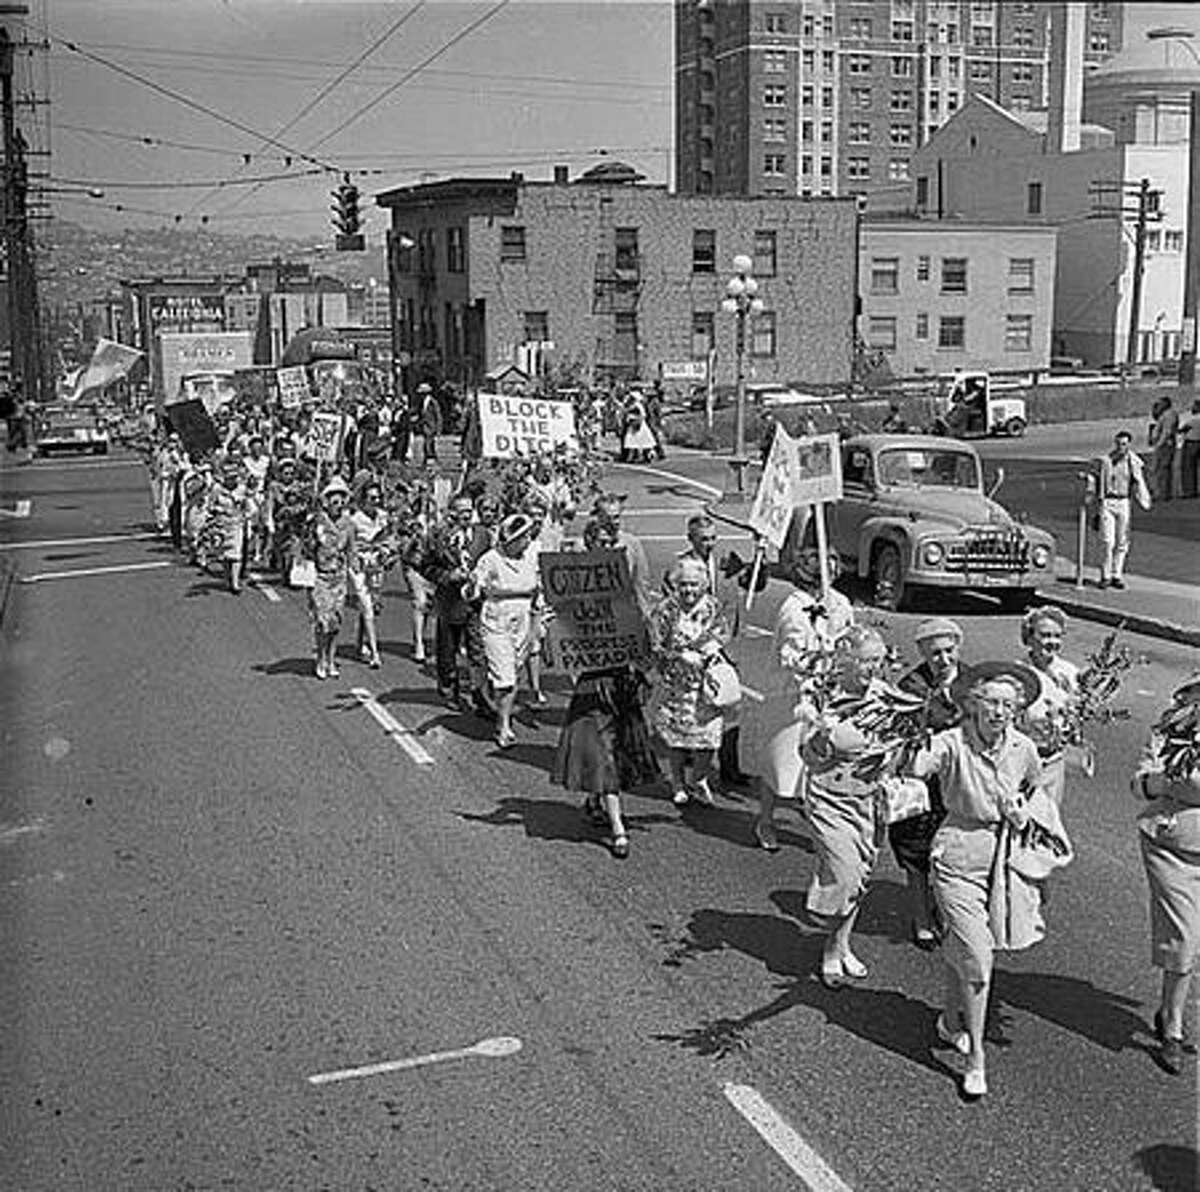 Protesters march across Spring Street demonstrating opposition to freeway construction, Seattle, June 1961. Construction of the Tacoma-Seattle-Everett freeway, which opened to traffic in December 1962, took up 6,600 parcels of land, 4,500 of them in Seattle. In 1958-59, the Washington State Highway Department paid homeowners fair market value for their homes, then auctioned the buildings for either removal or salvage. (Seattlepi.com file/MOHAI)